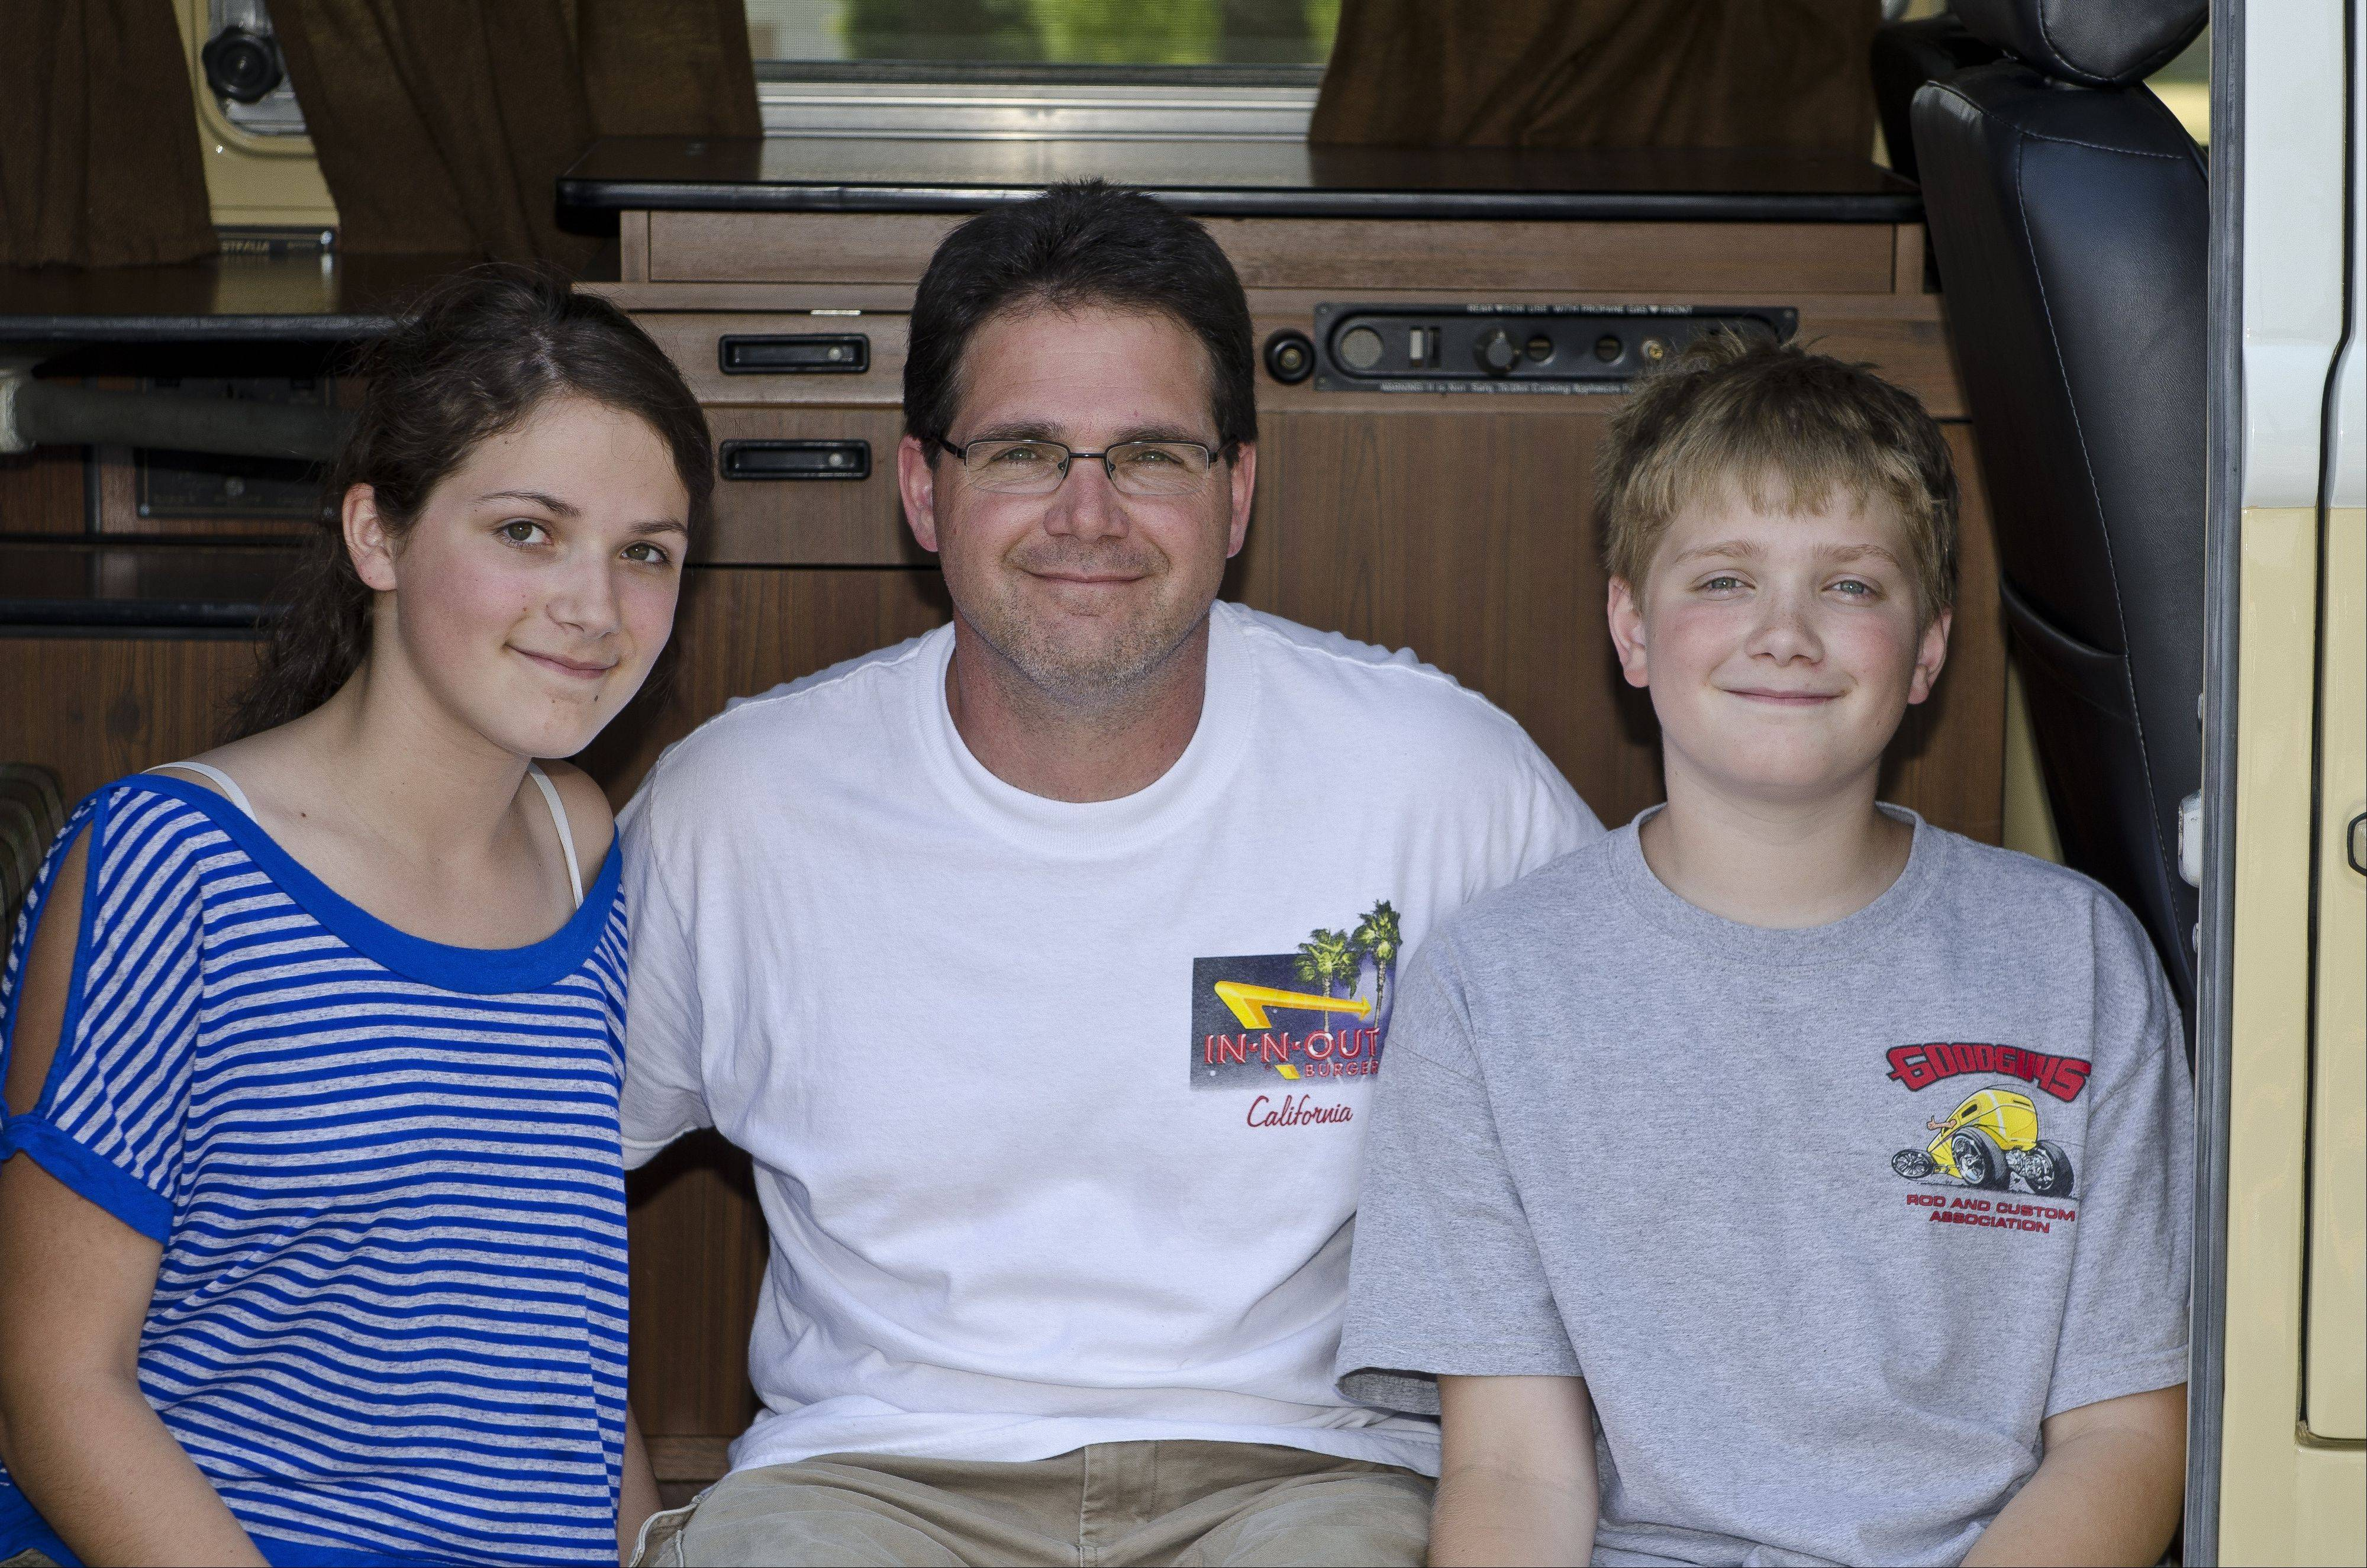 Jack Connolly of Elk Grove Village and his children, Anna and Jack Jr., enjoy the trips they take in their VW Bus.